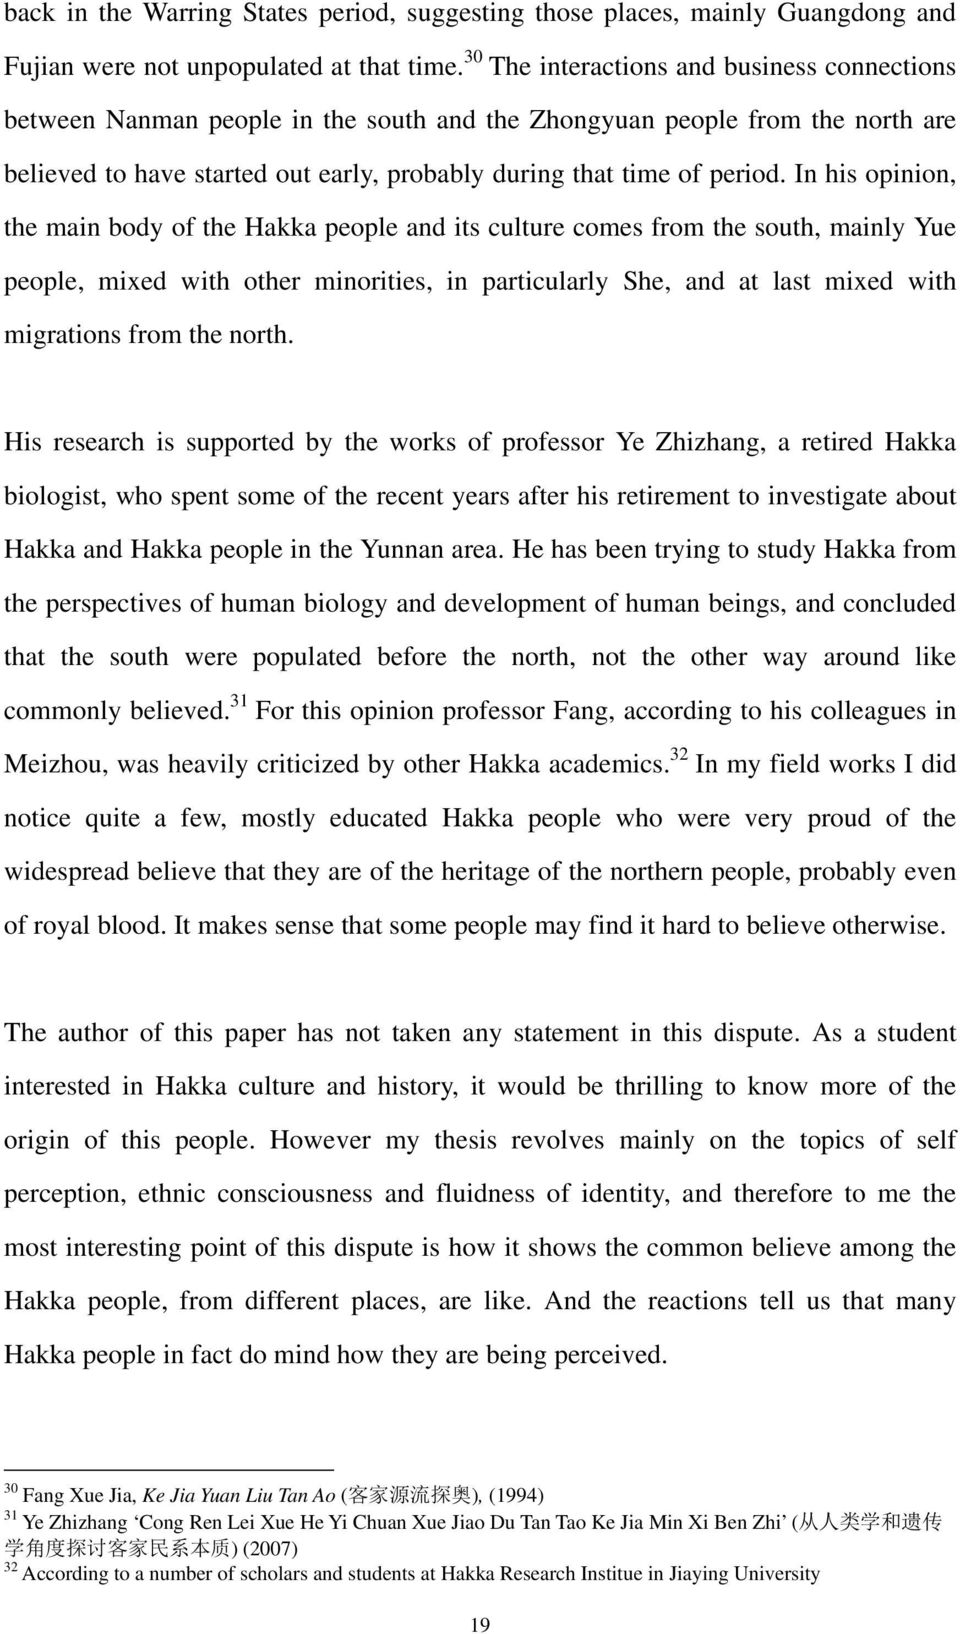 In his opinion, the main body of the Hakka people and its culture comes from the south, mainly Yue people, mixed with other minorities, in particularly She, and at last mixed with migrations from the